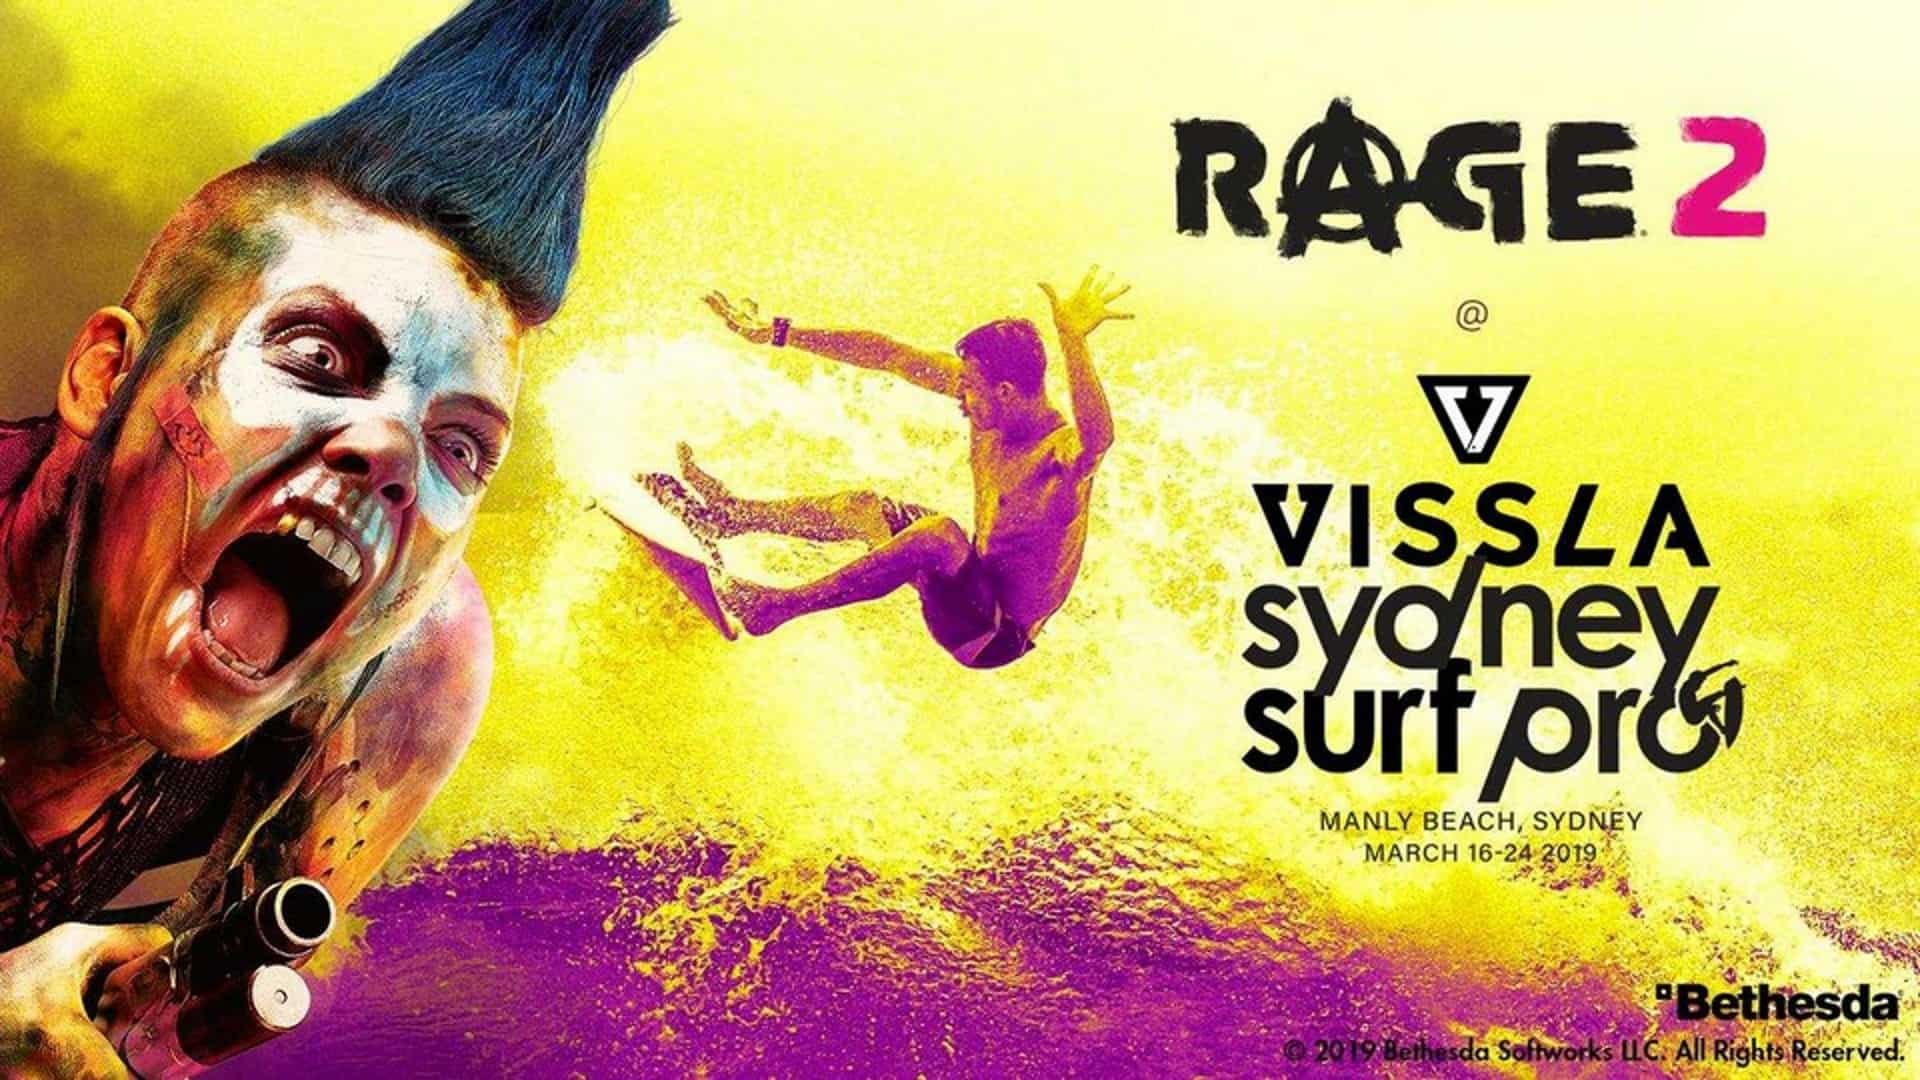 RAGE 2 Is Coming To Vissla Sydney Surf Pro This Year